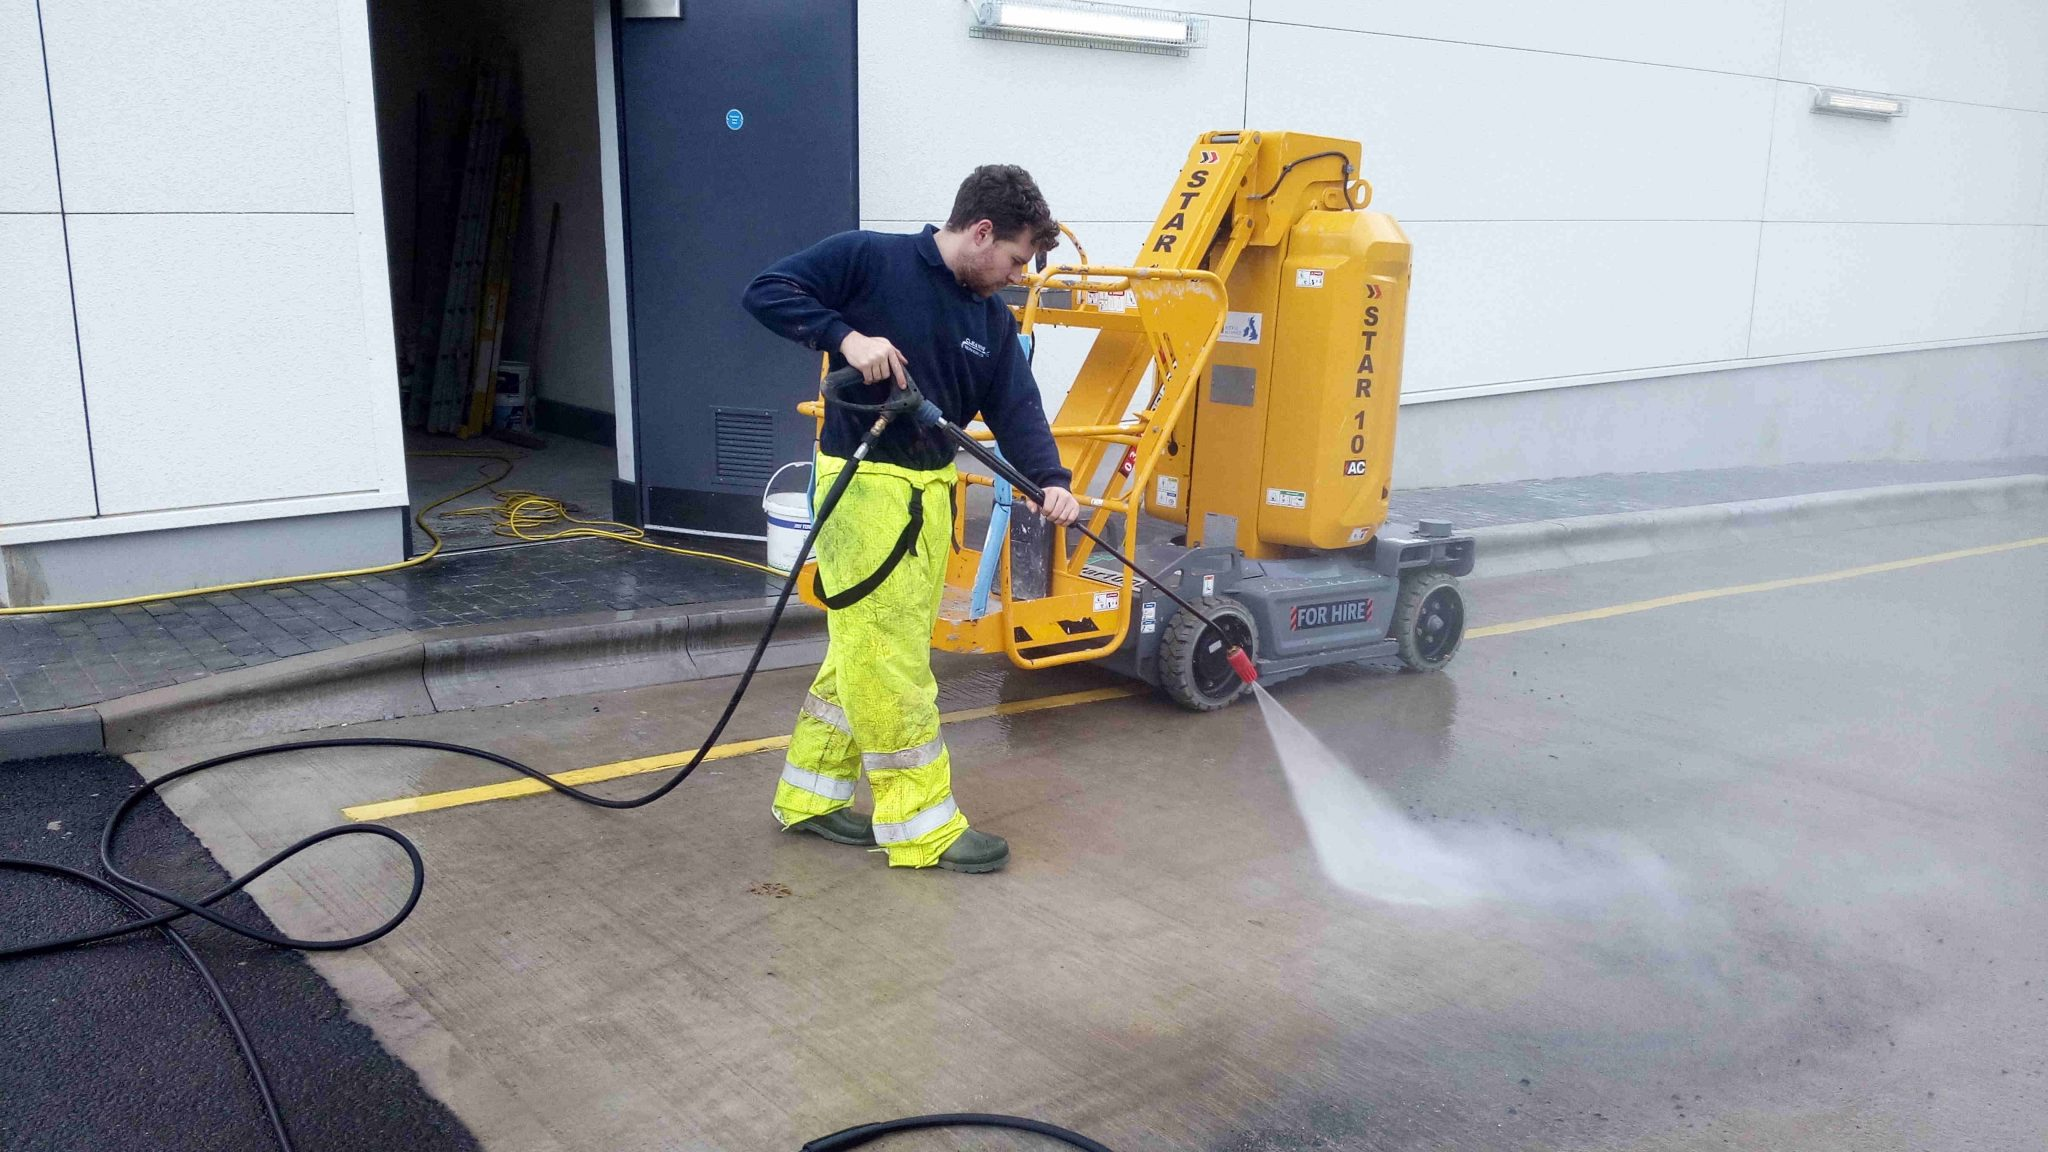 Image of jet washing service merseyside www.cleaning-service.uk.com